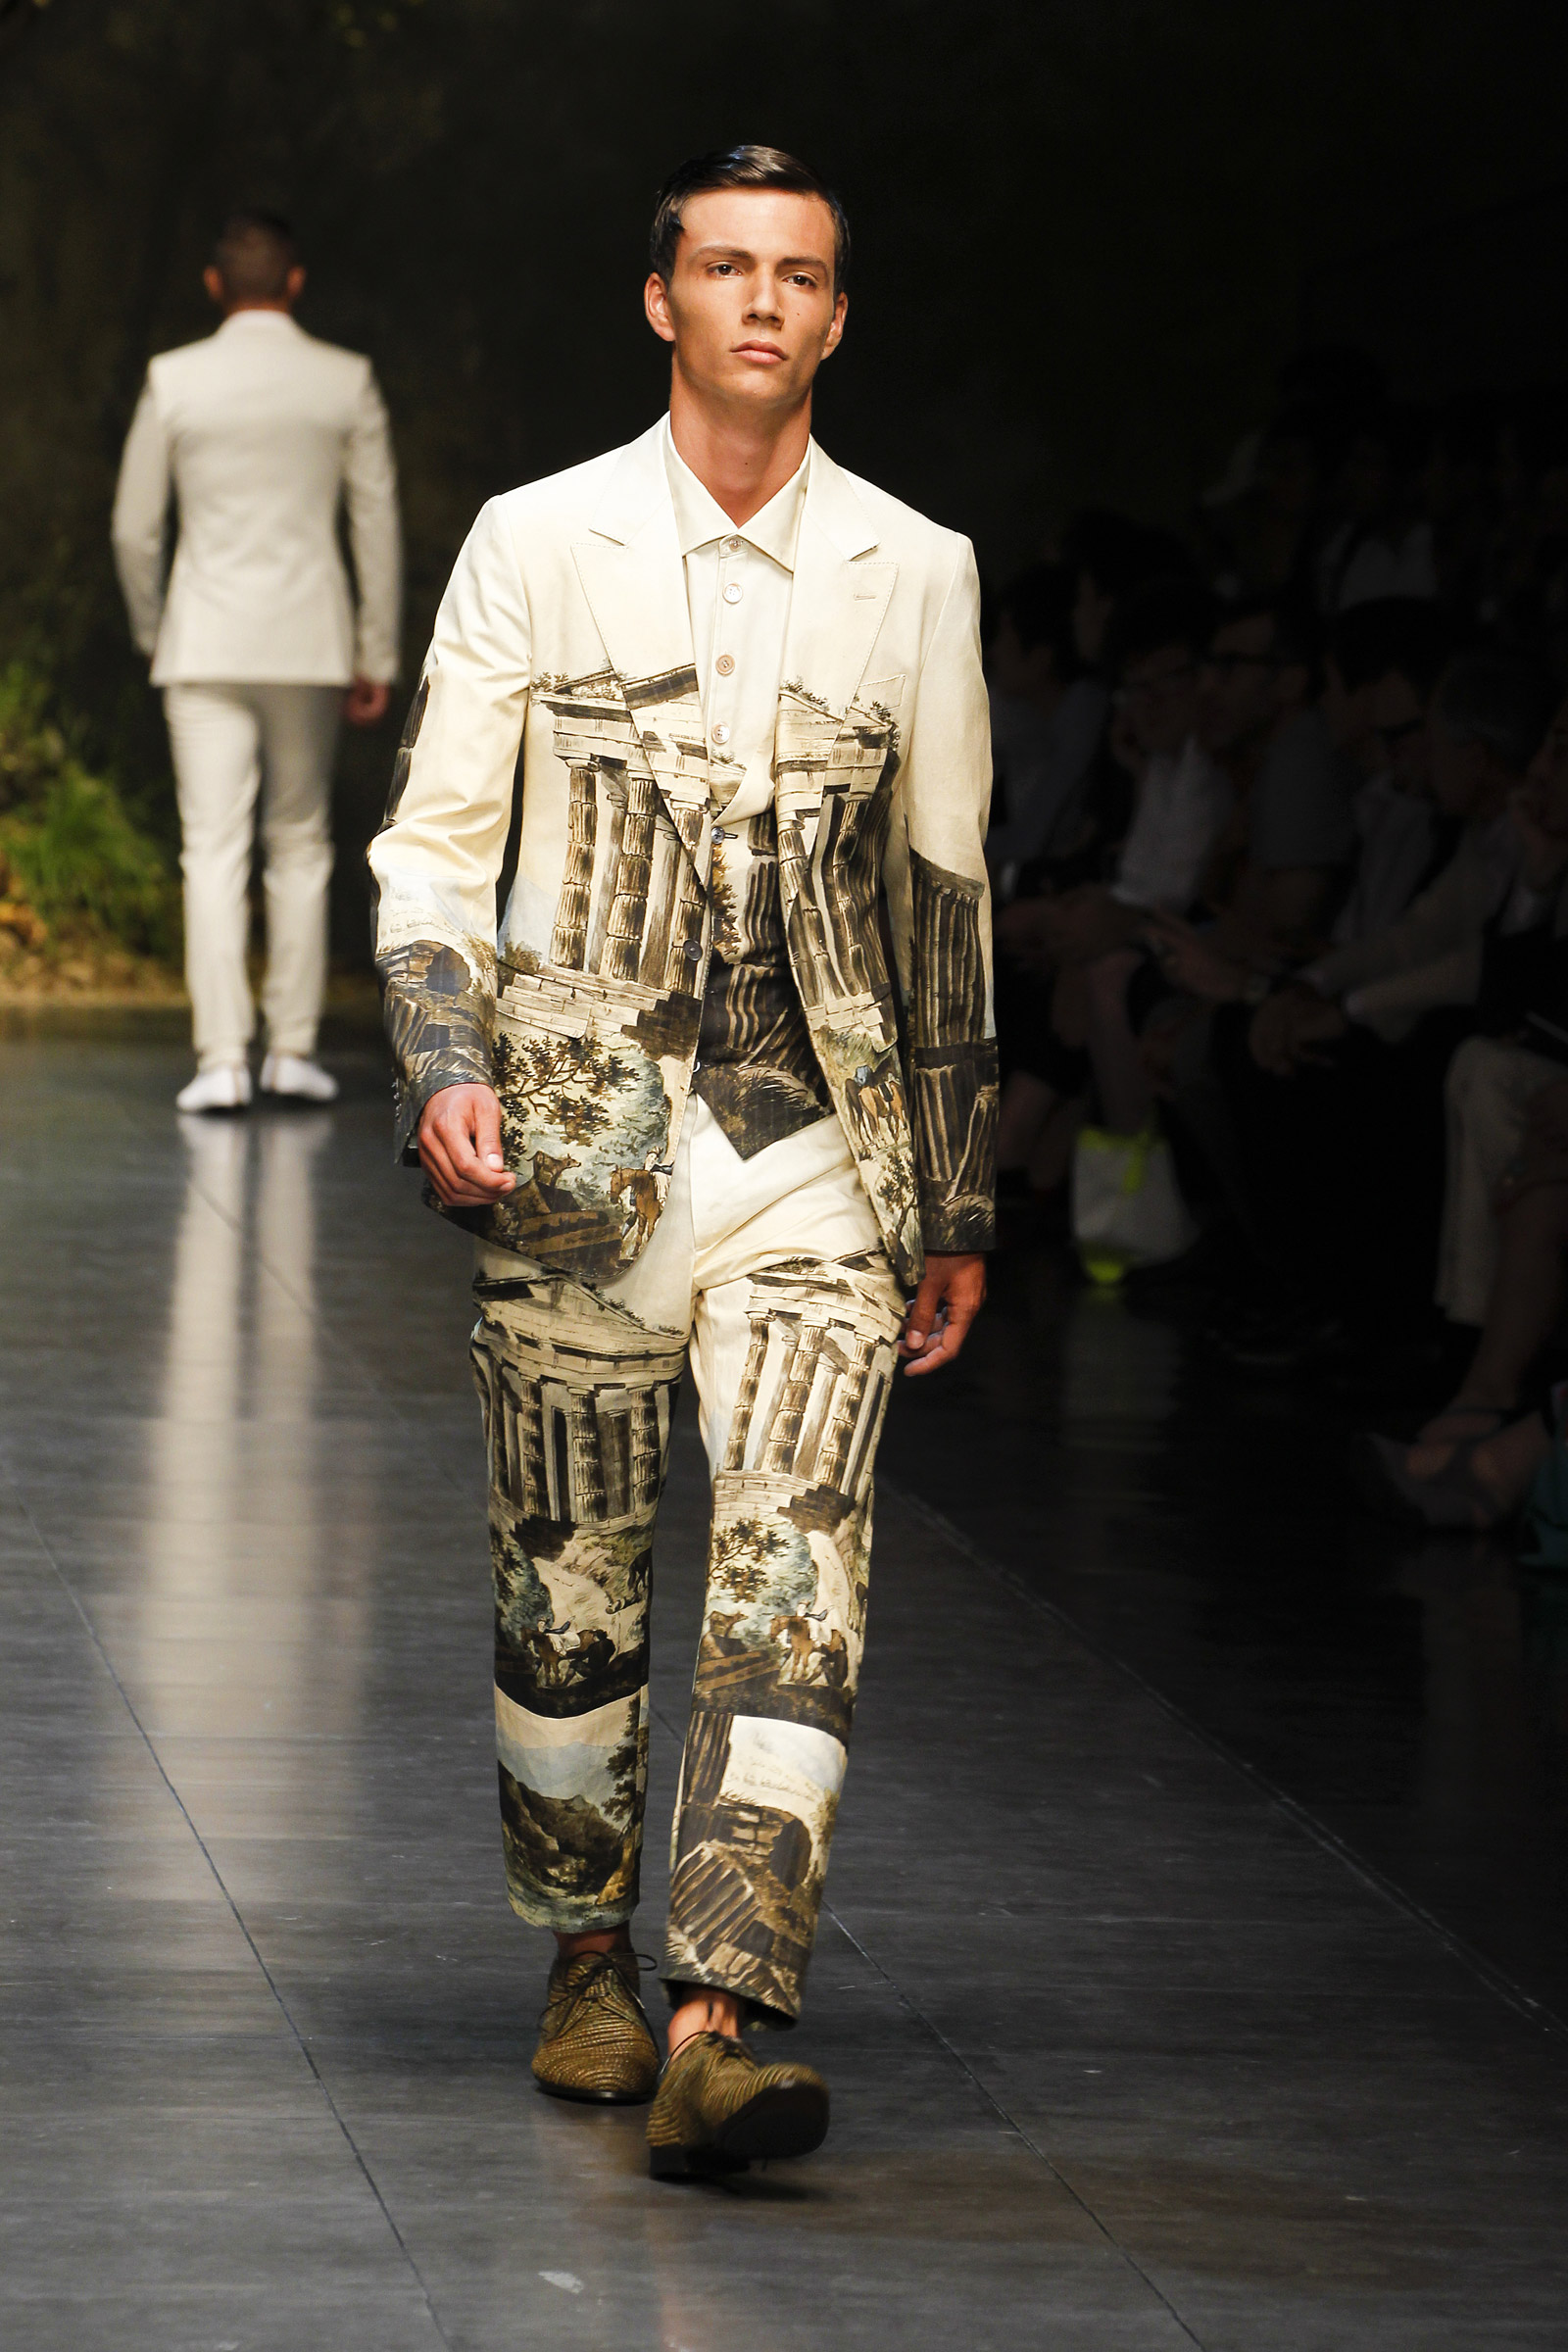 Dolce & Gabbana Summer 2014 Men's Fashion Show